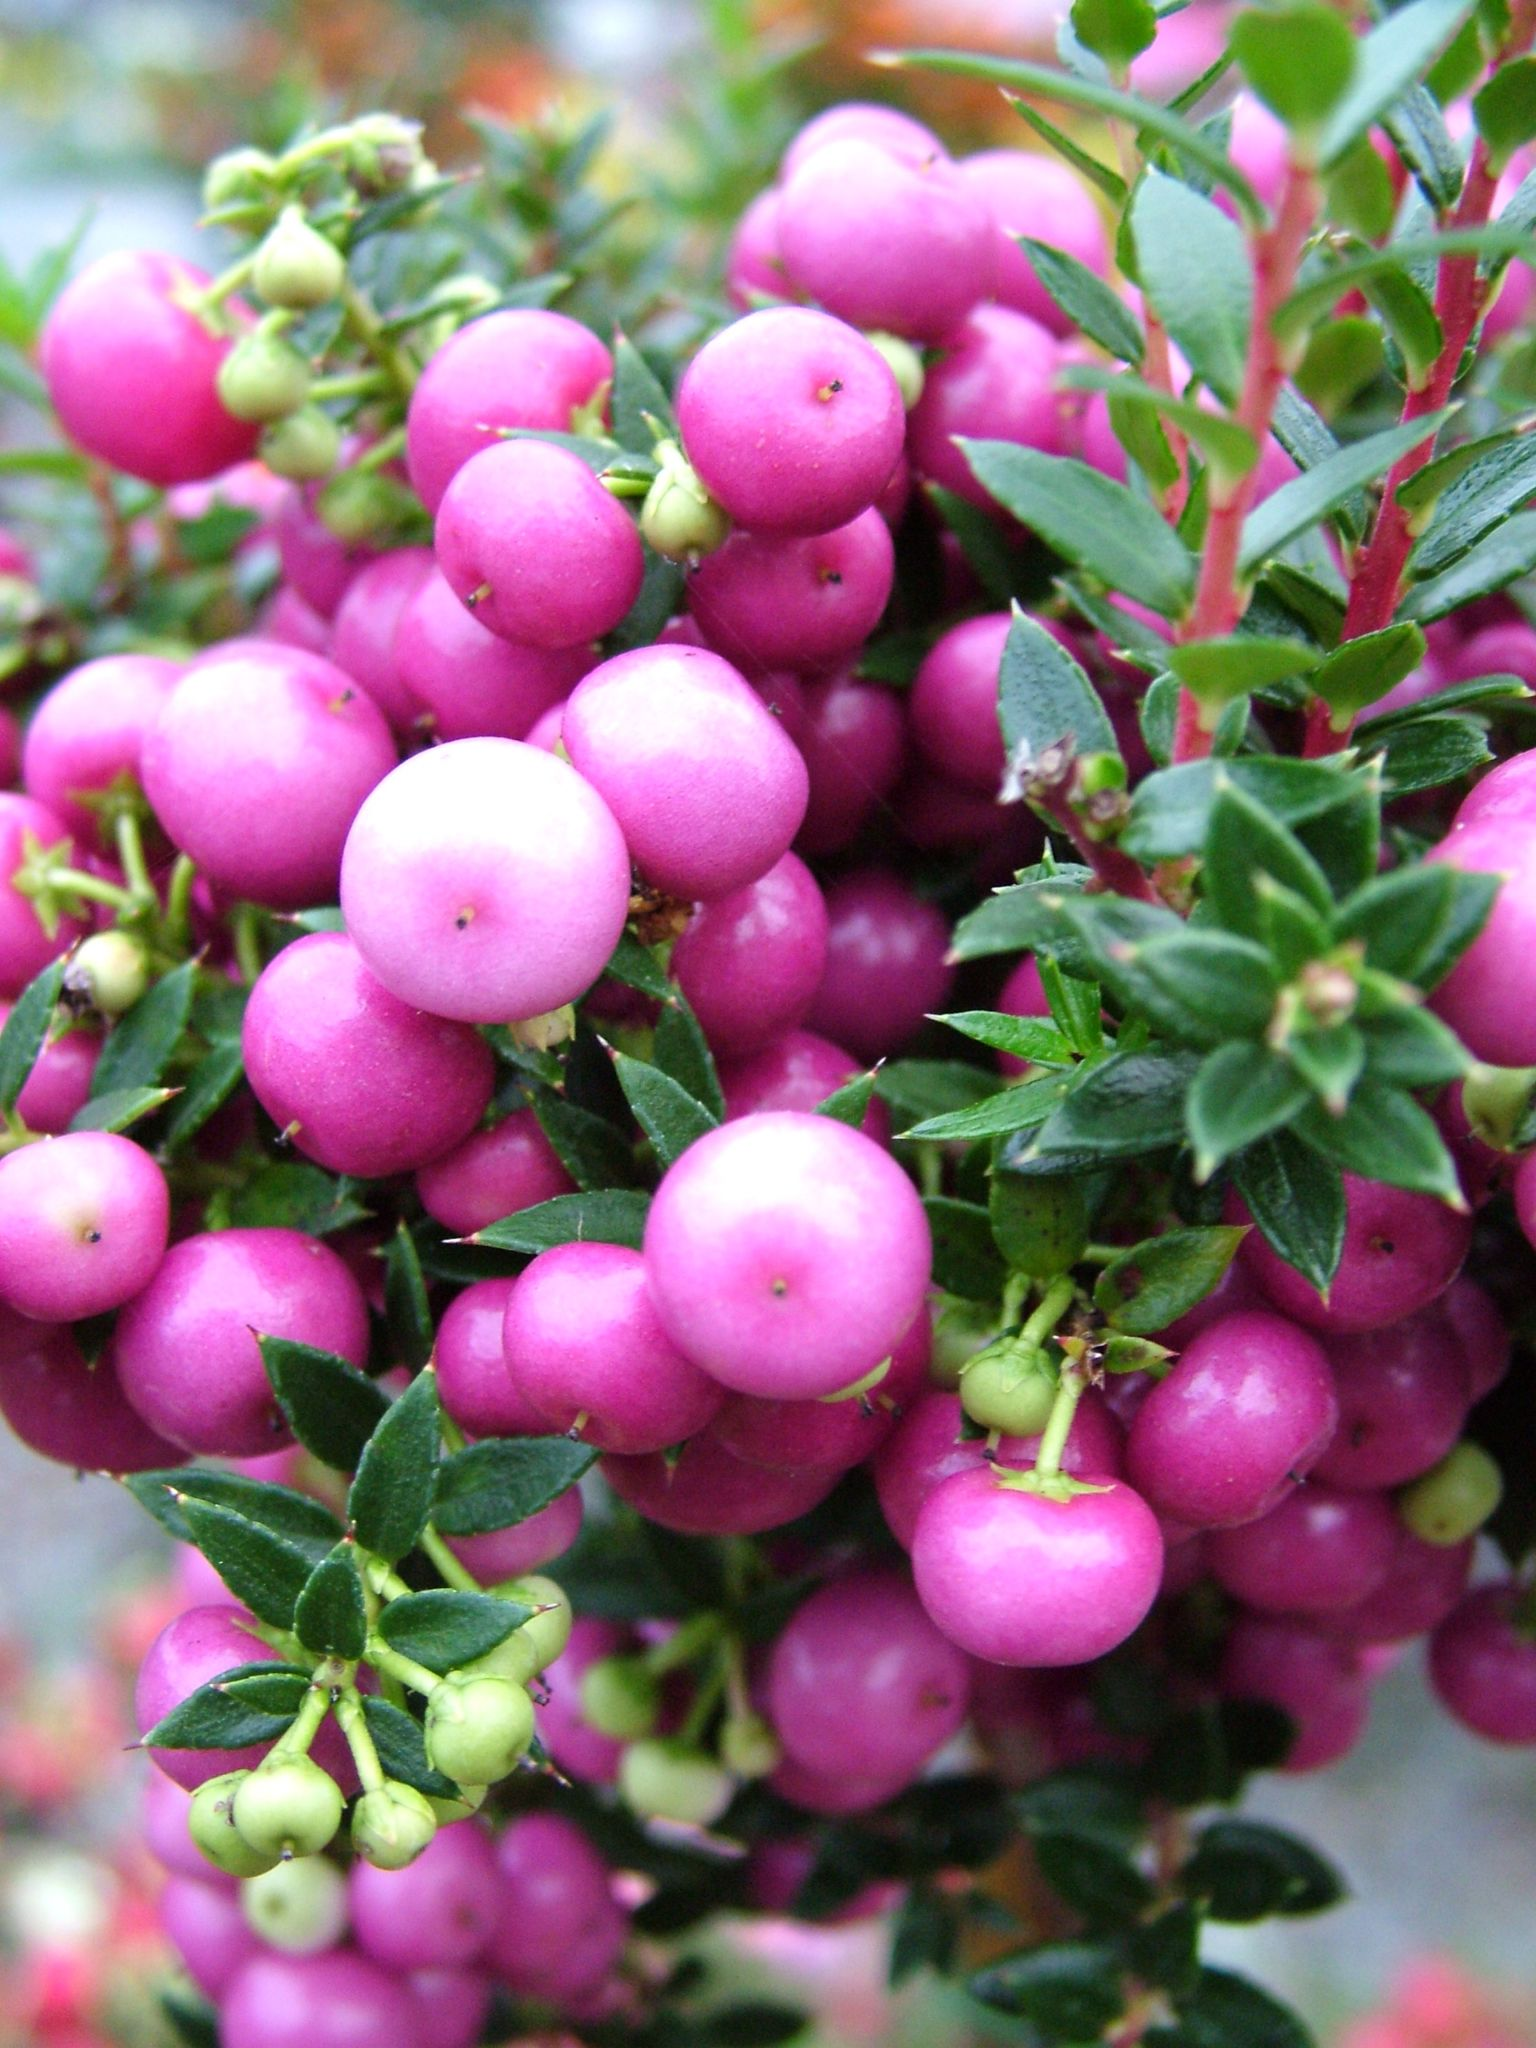 Pernettya Pink.Pink Berries Of Pernettya In The Garden Will Hold The Berries All Winter Long As The Birds Won T Eat Them Berries Plants Trees And Shrubs